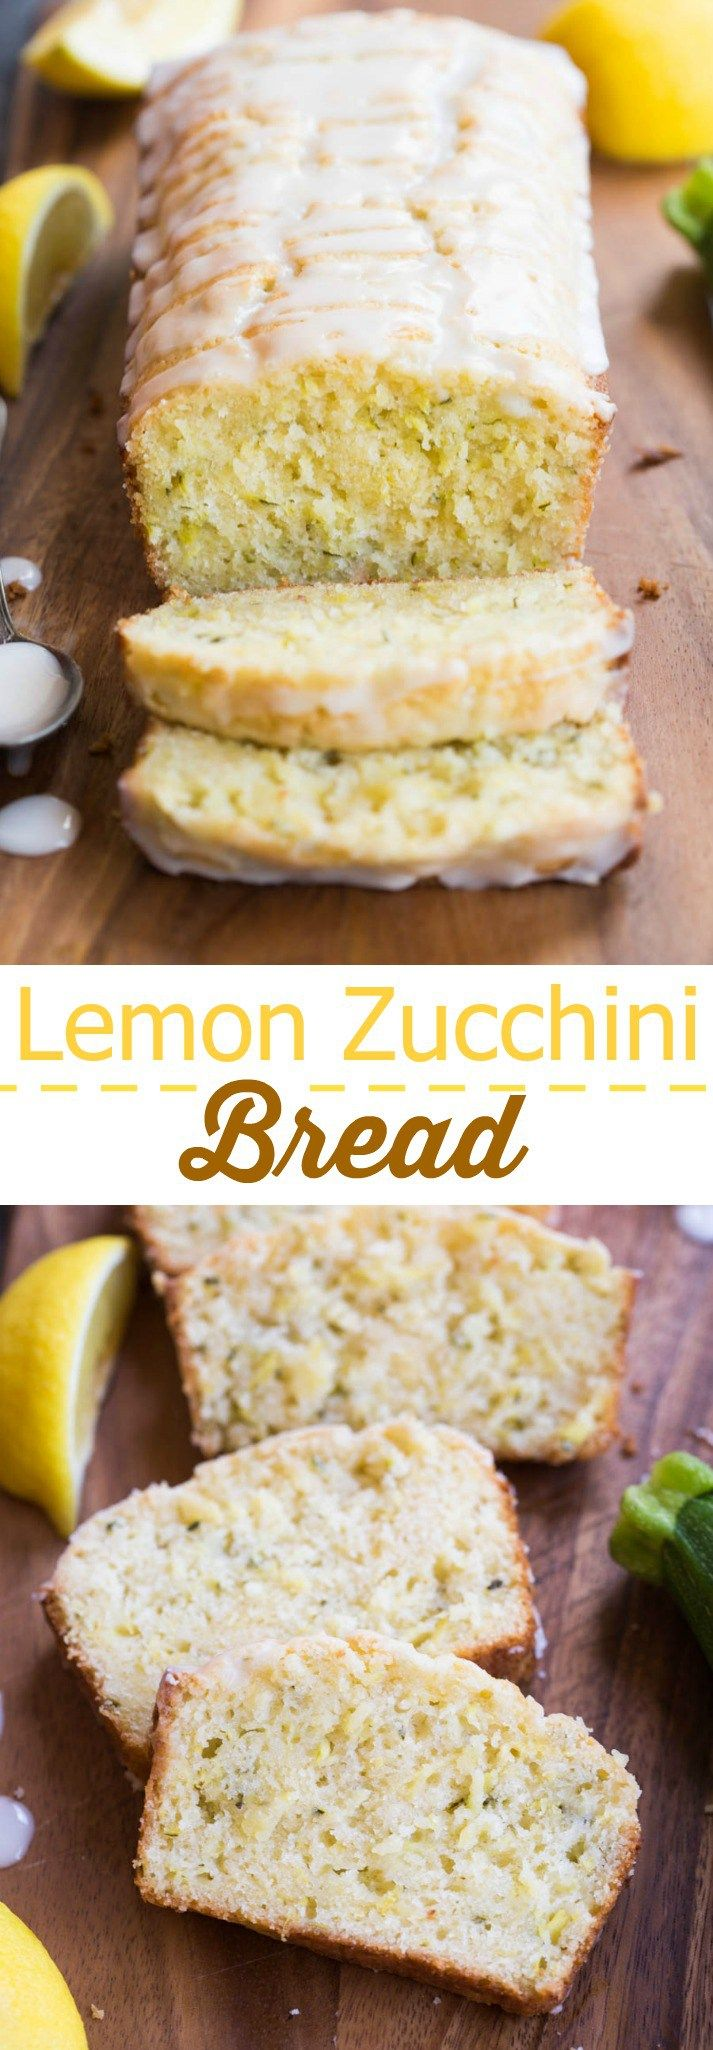 Lemon Zucchini Bread is one of our favorite quick bread recipes during the summer months! This super flavorful and moist bread tastes great for dessert, as a snack, or even for breakfast or brunch. (Quick Bake Goods)